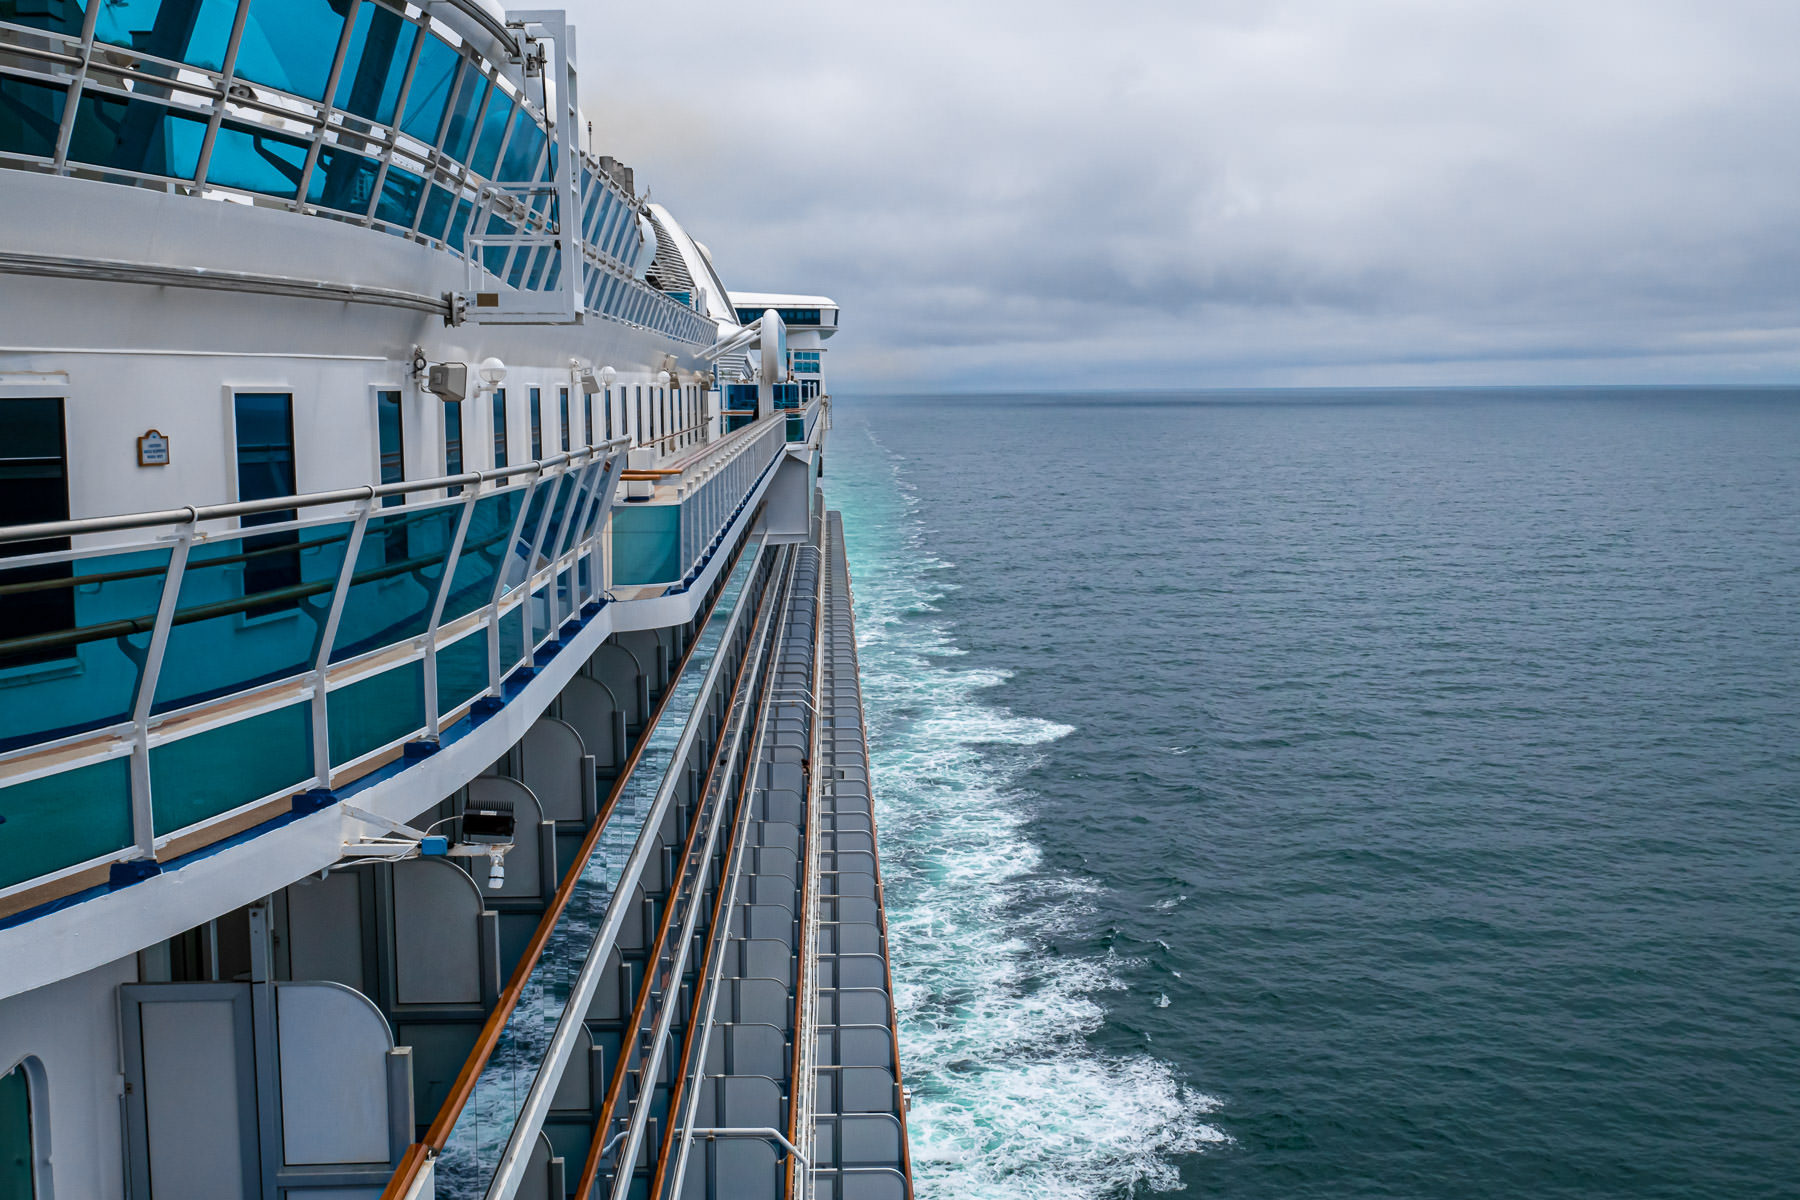 The cruise ship Star Princess sails from Seattle towards Alaska.